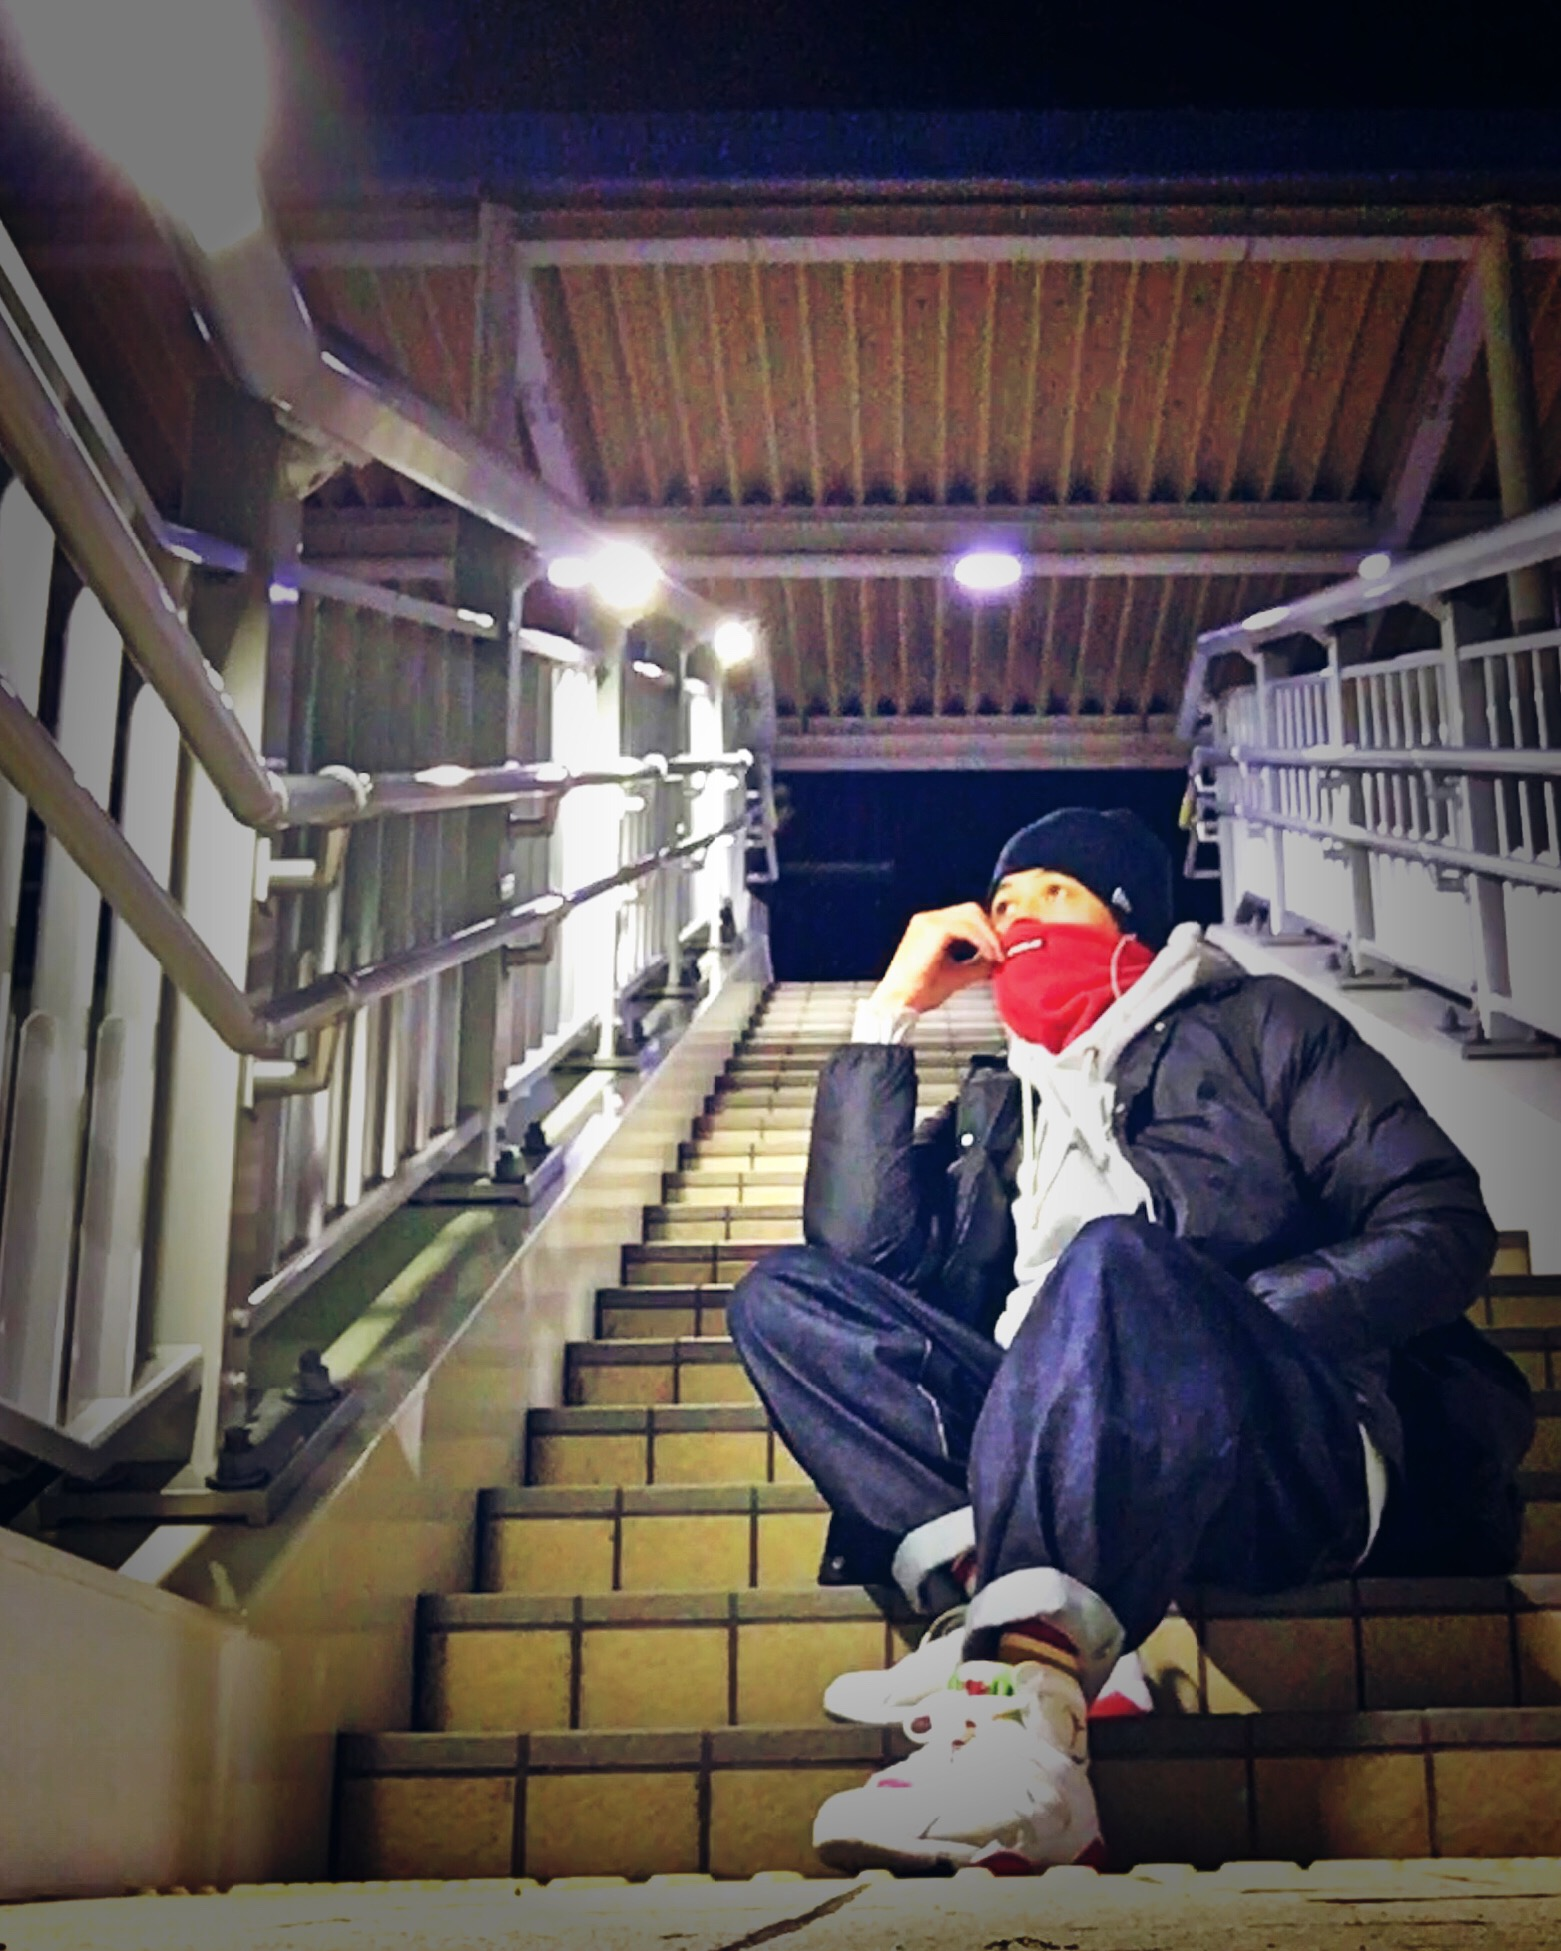 ・ Today's mission has ended…👨🍳 ・  It